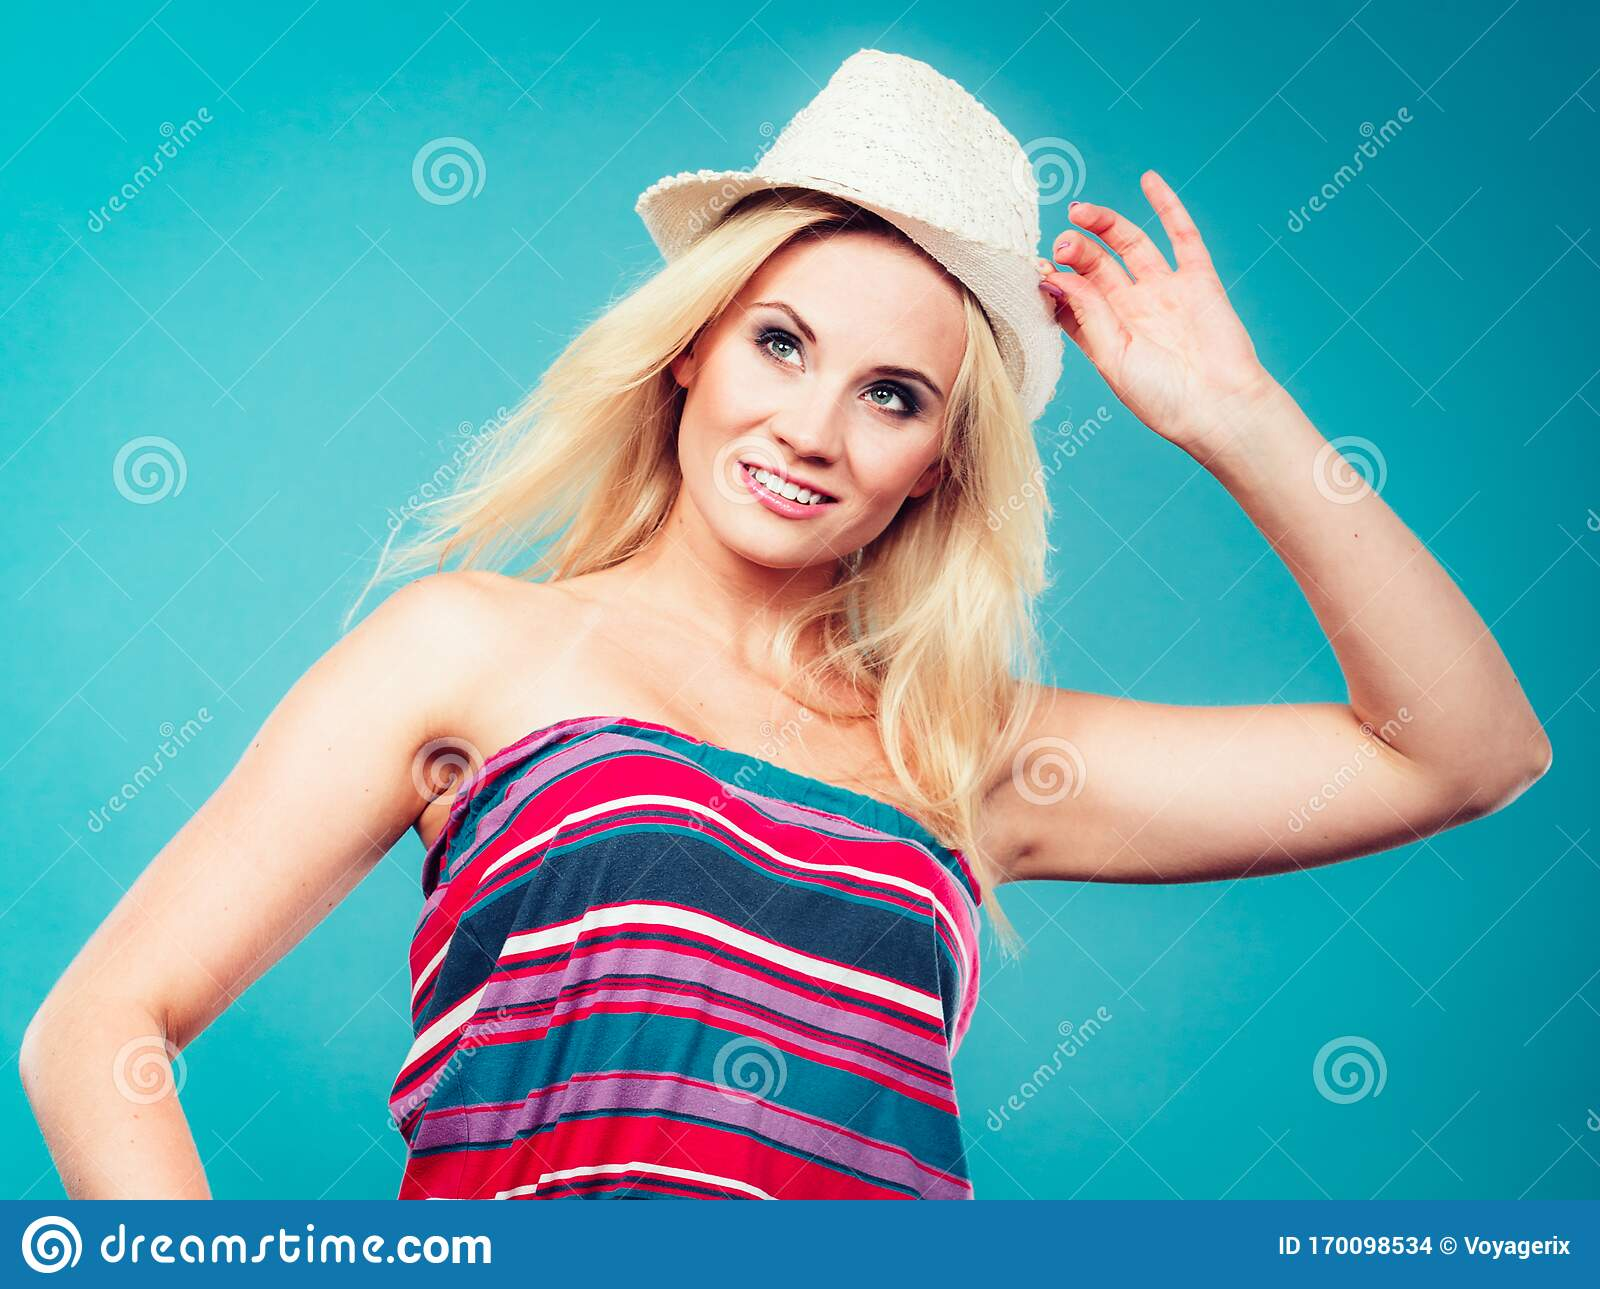 Blonde Woman Wearing Colorful Striped Strapless Shirt Stock Photo